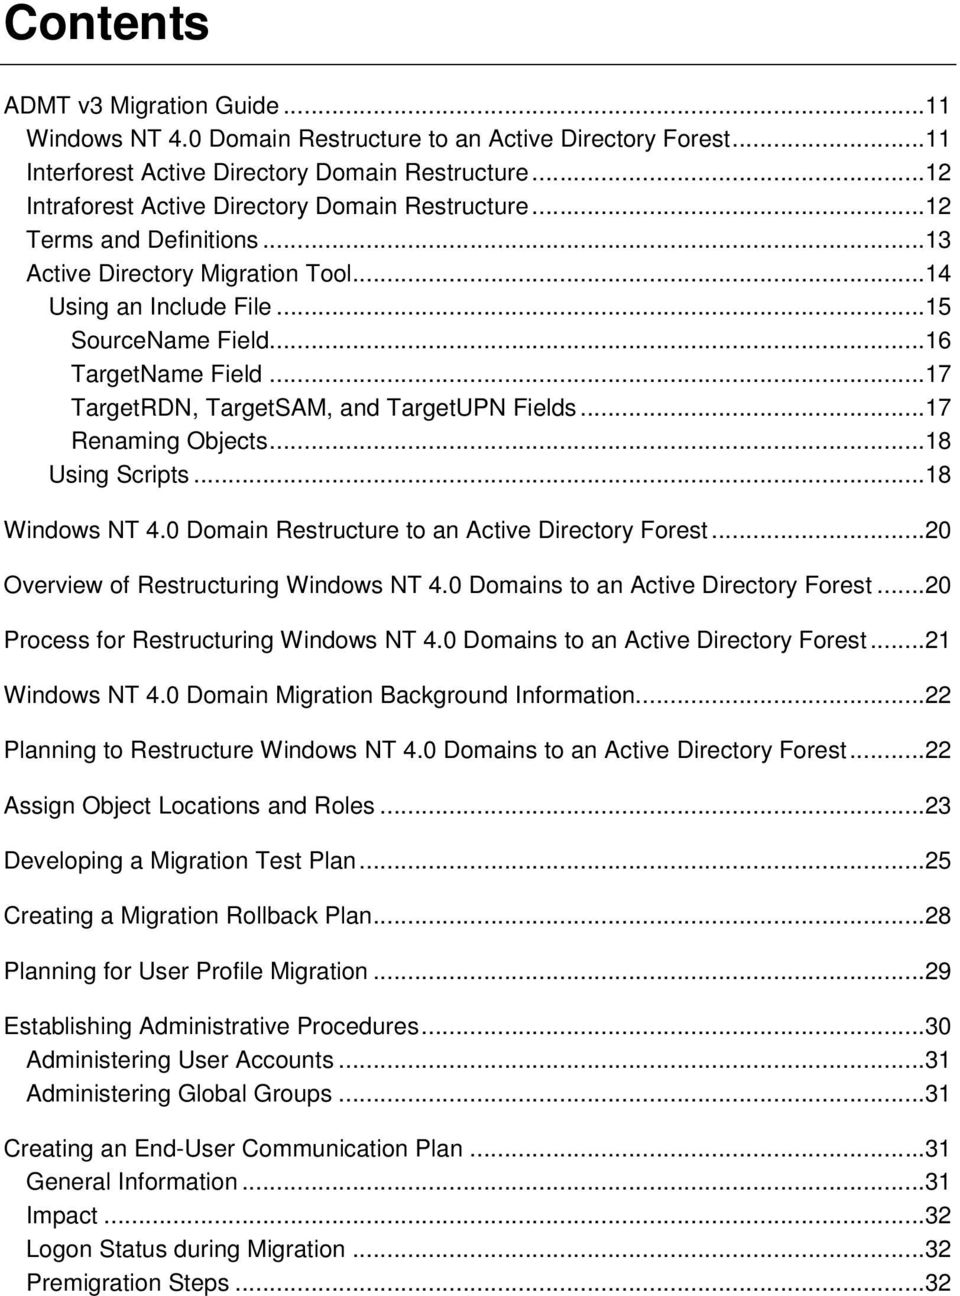 ..17 TargetRDN, TargetSAM, and TargetUPN Fields...17 Renaming Objects...18 Using Scripts...18 Windows NT 4.0 Domain Restructure to an Active Directory Forest...20 Overview of Restructuring Windows NT 4.